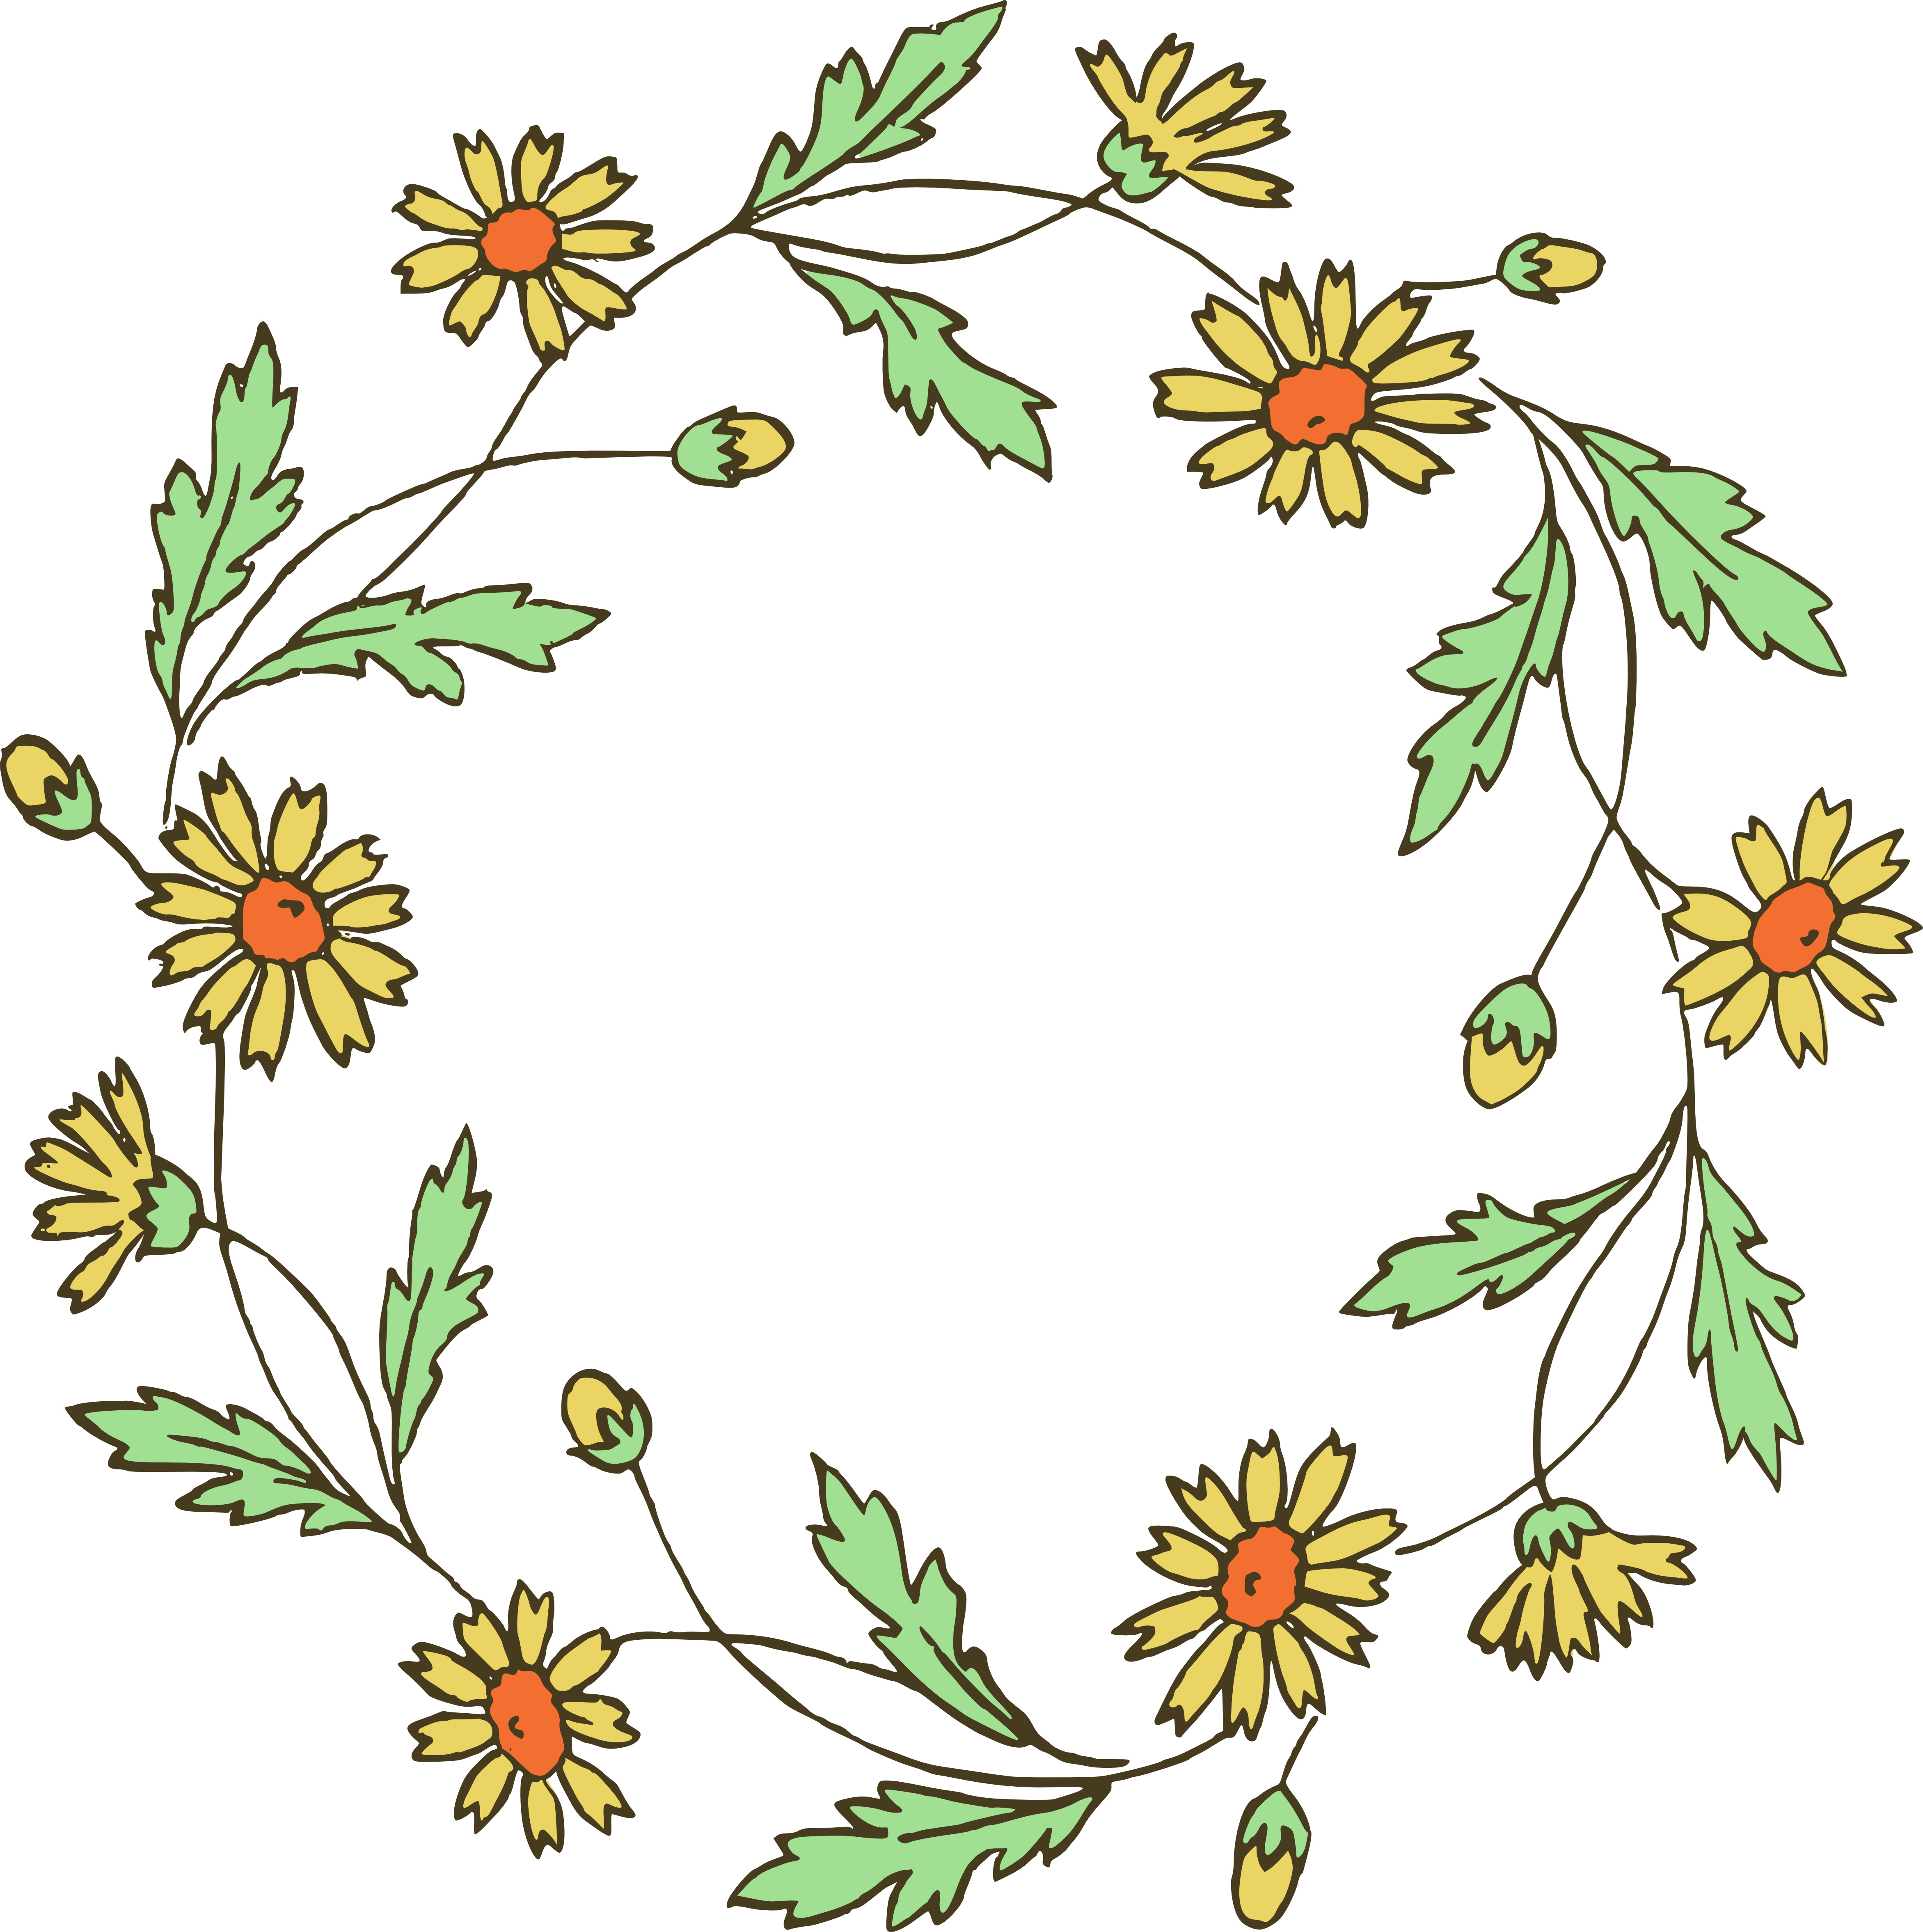 Wreath of flower clipart png image transparent download Wreath of flower clipart png - ClipartFox image transparent download